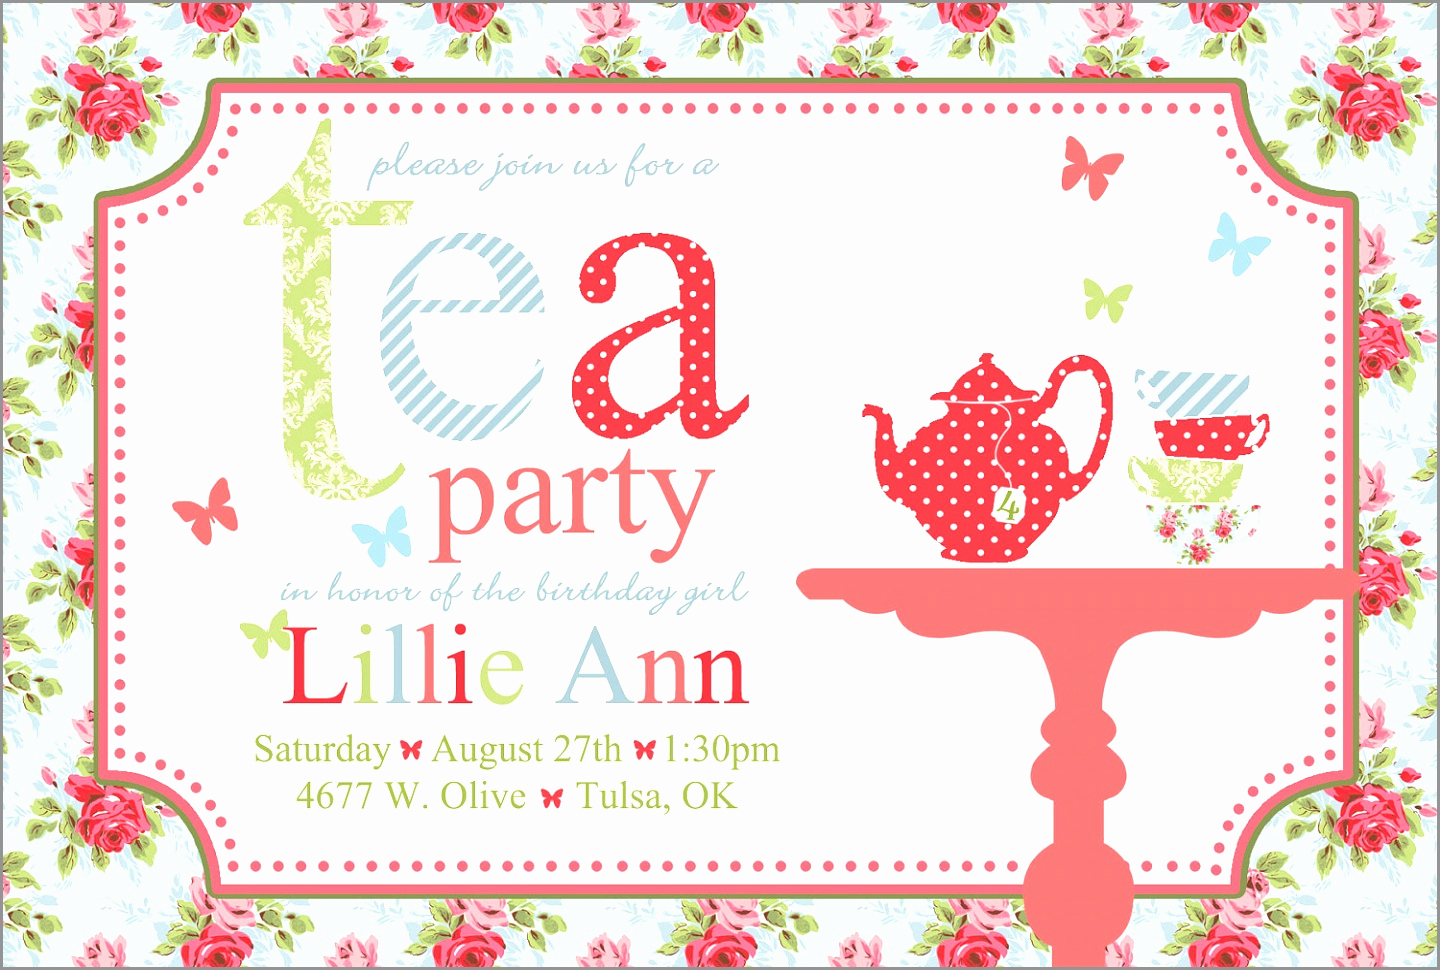 Tea Party Invitation Template Word Lovely Vintage Bridal Shower Tea Party Invitation Template